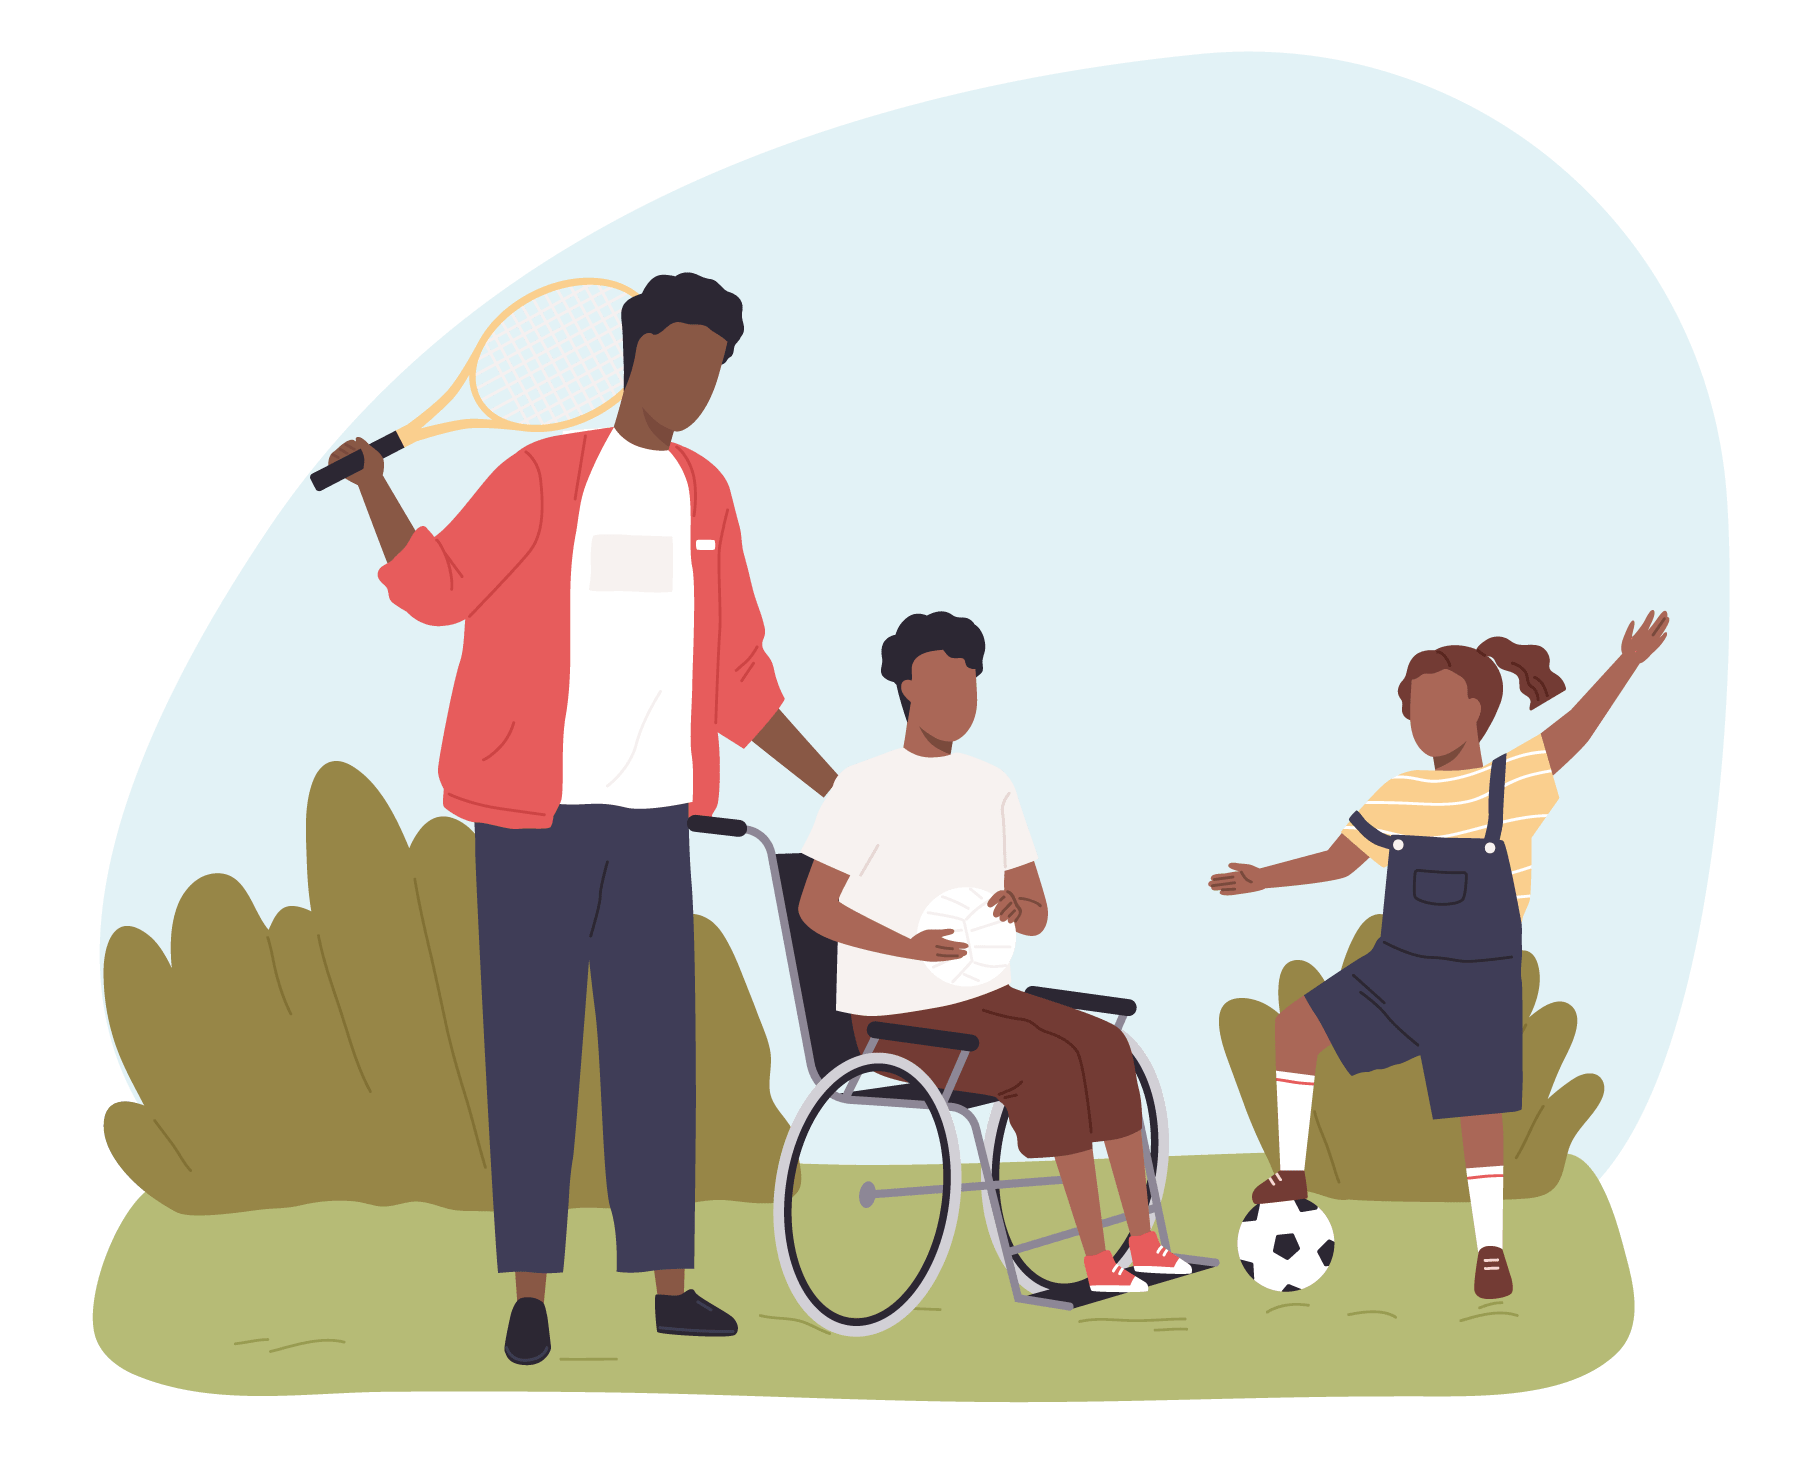 Family illustrative figures outside placing soccer without masks on